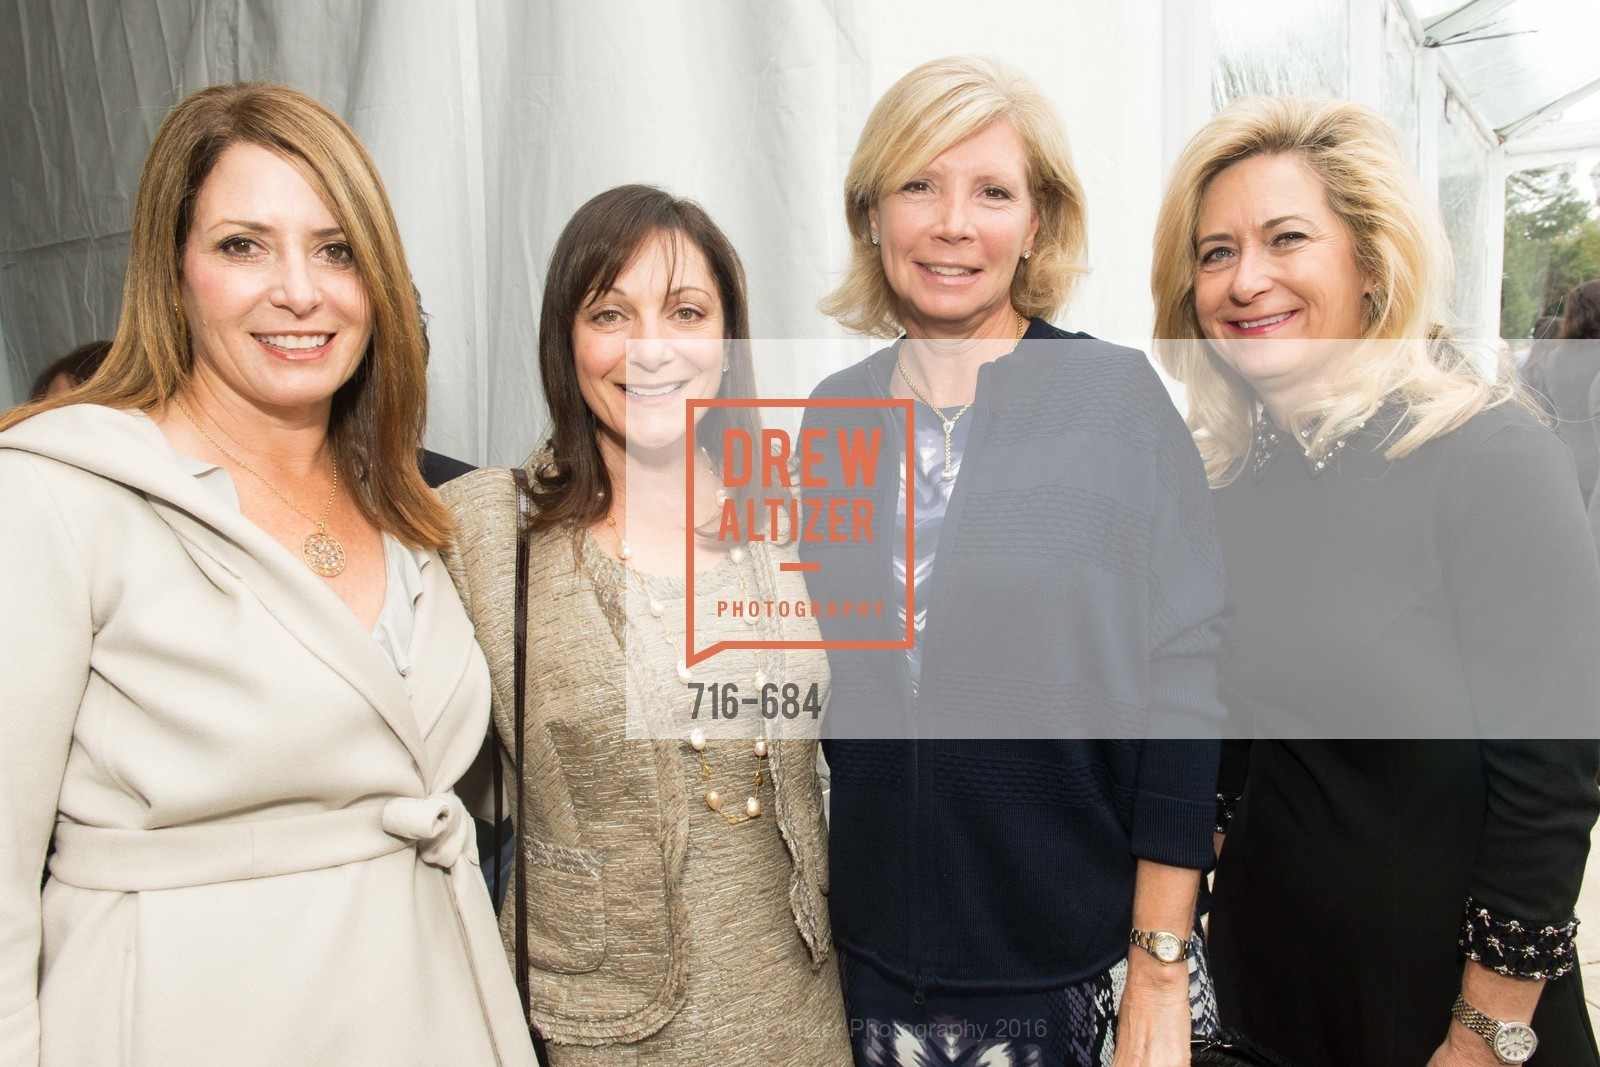 Cynthia Sewell, Noreen Carruthers, Patty Cluss, Michele Culhane, Under One Umbrella, Sharon Heights Golf and Country Club, January 13th, 2016,Drew Altizer, Drew Altizer Photography, full-service agency, private events, San Francisco photographer, photographer california